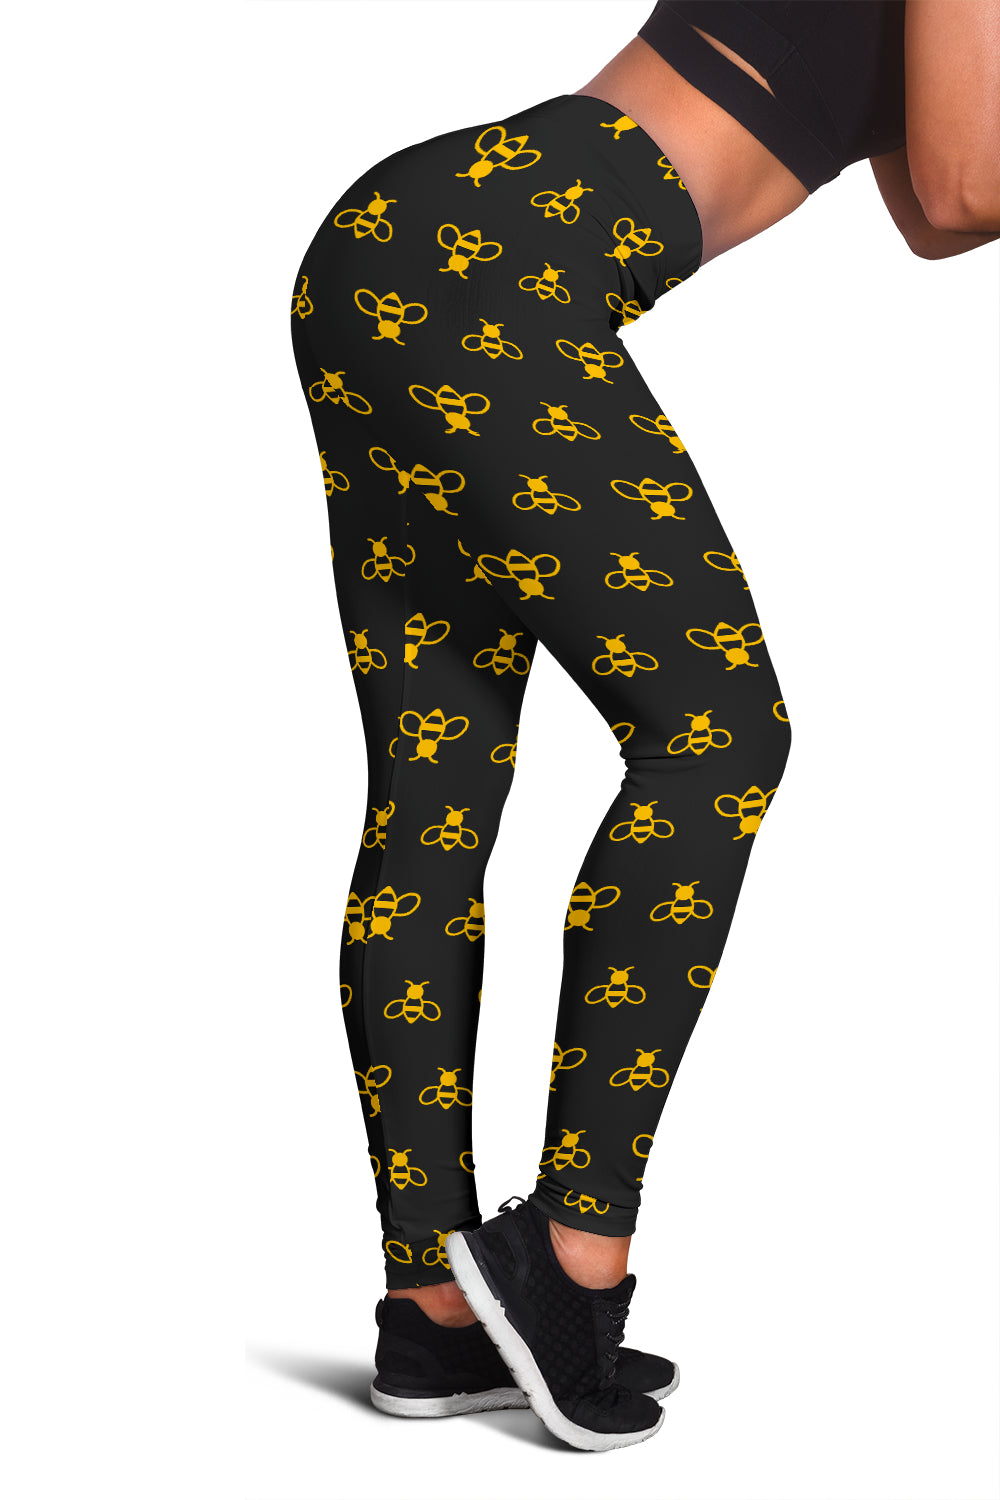 Honey Bee Women's Leggings - JaZazzy